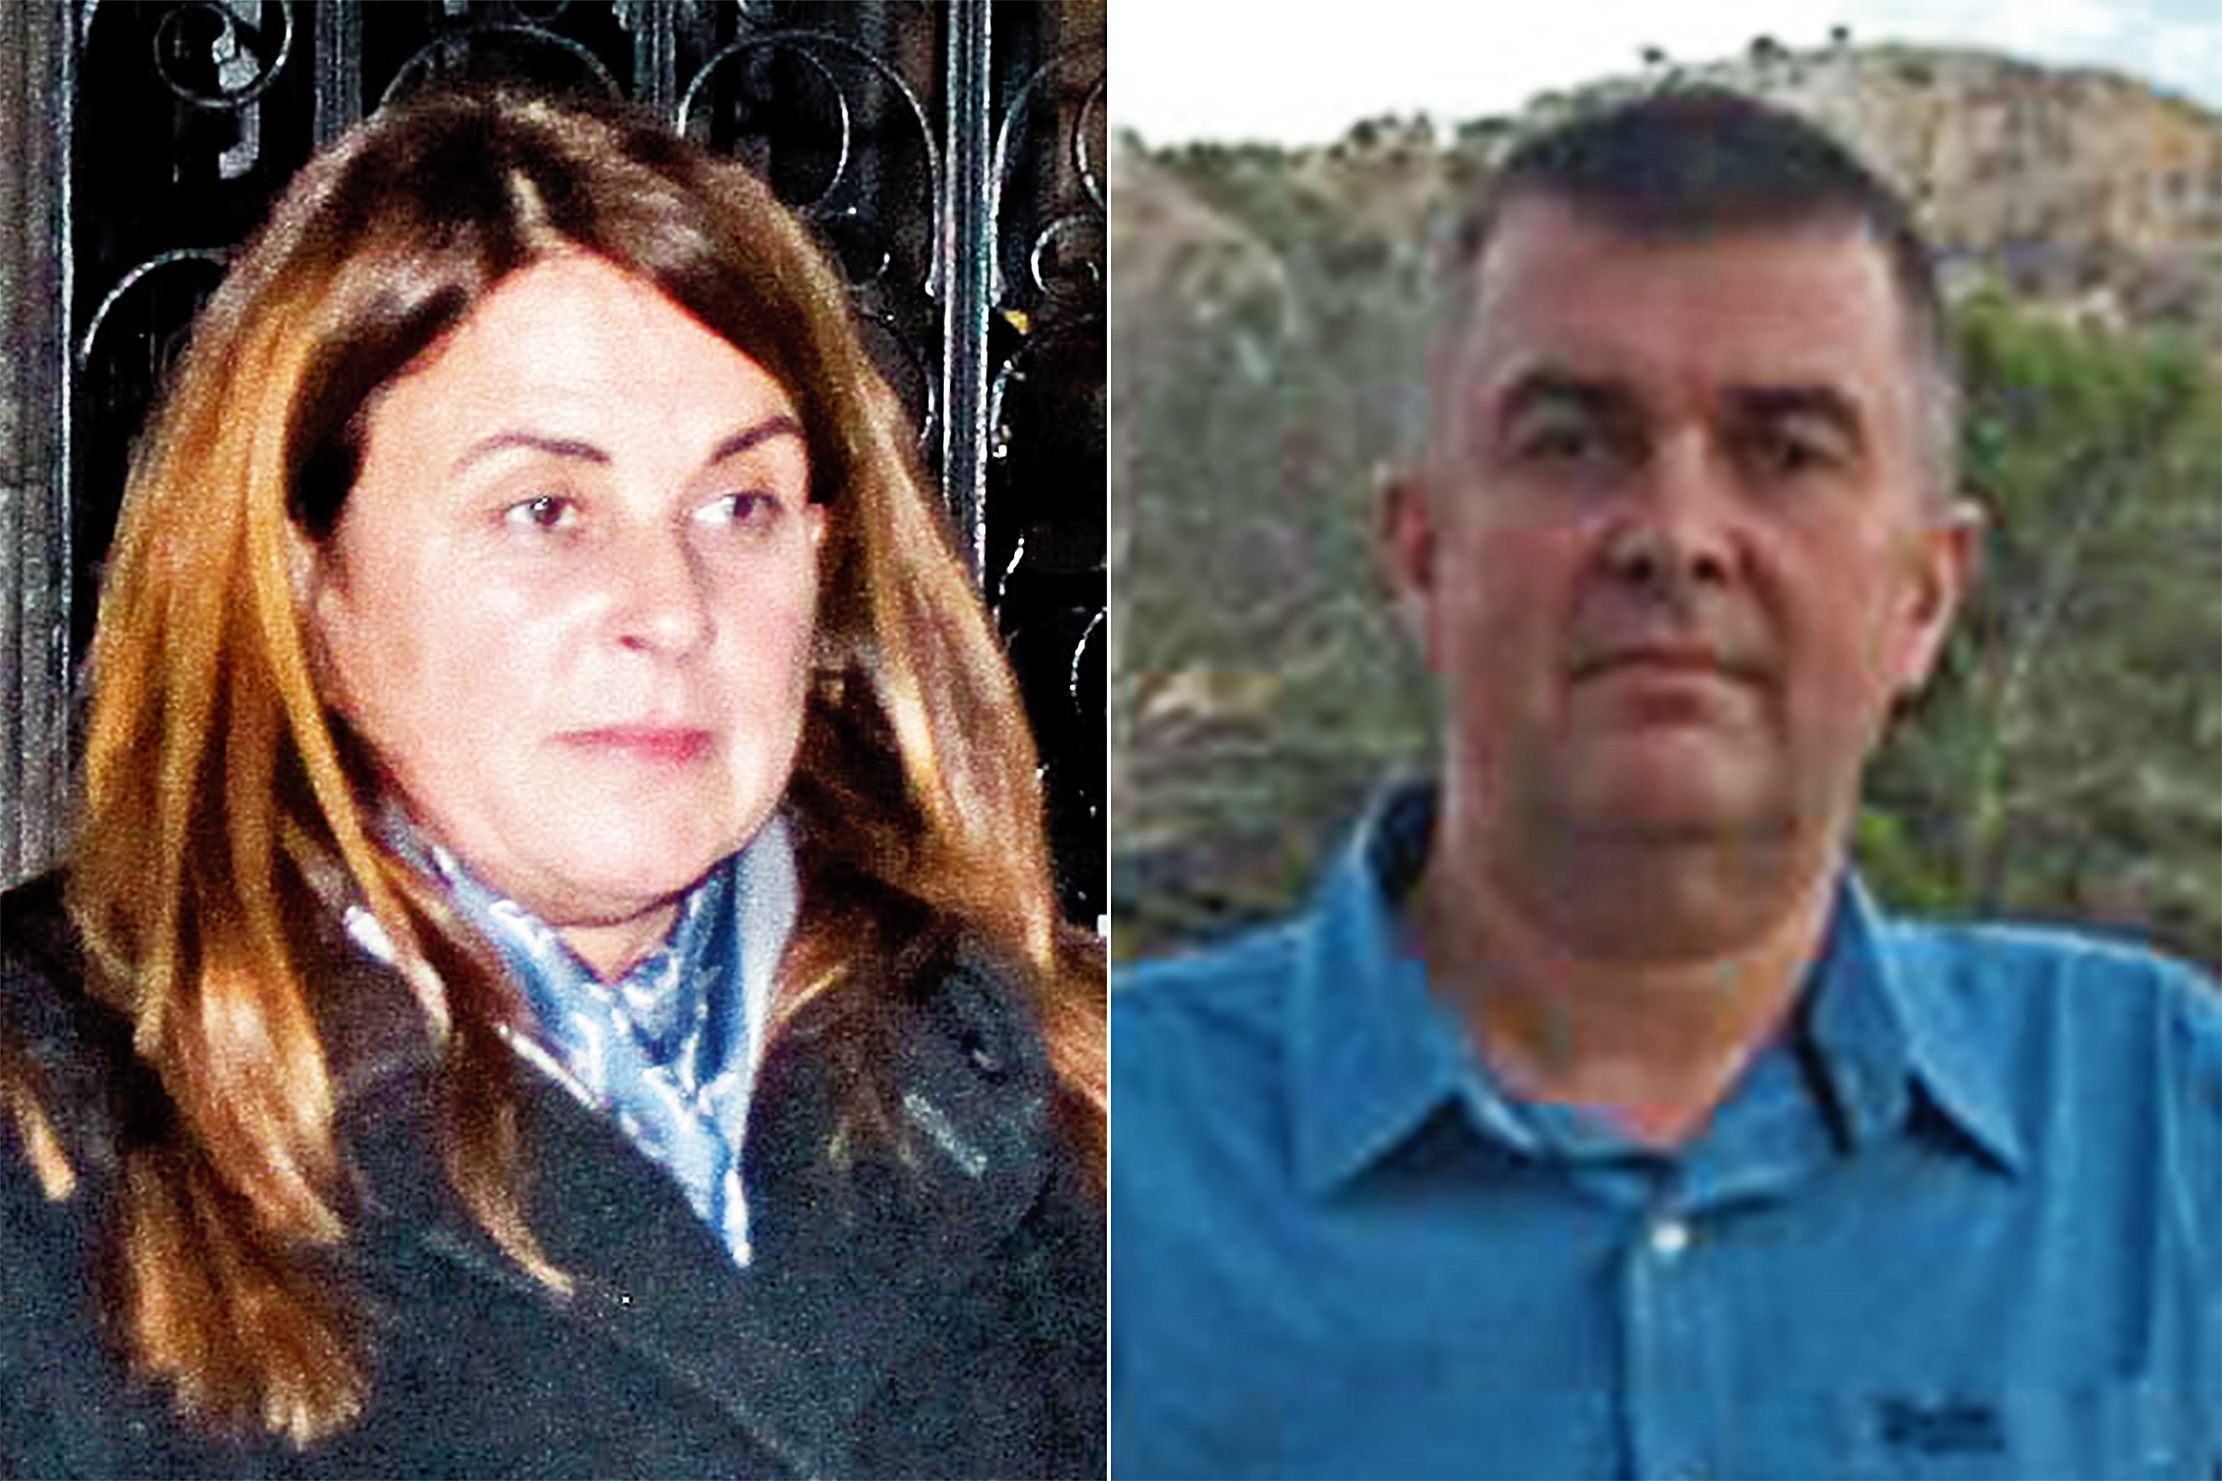 Kim Waggott has taken her ex-husband William Waggott to court for a share of his post-separation income